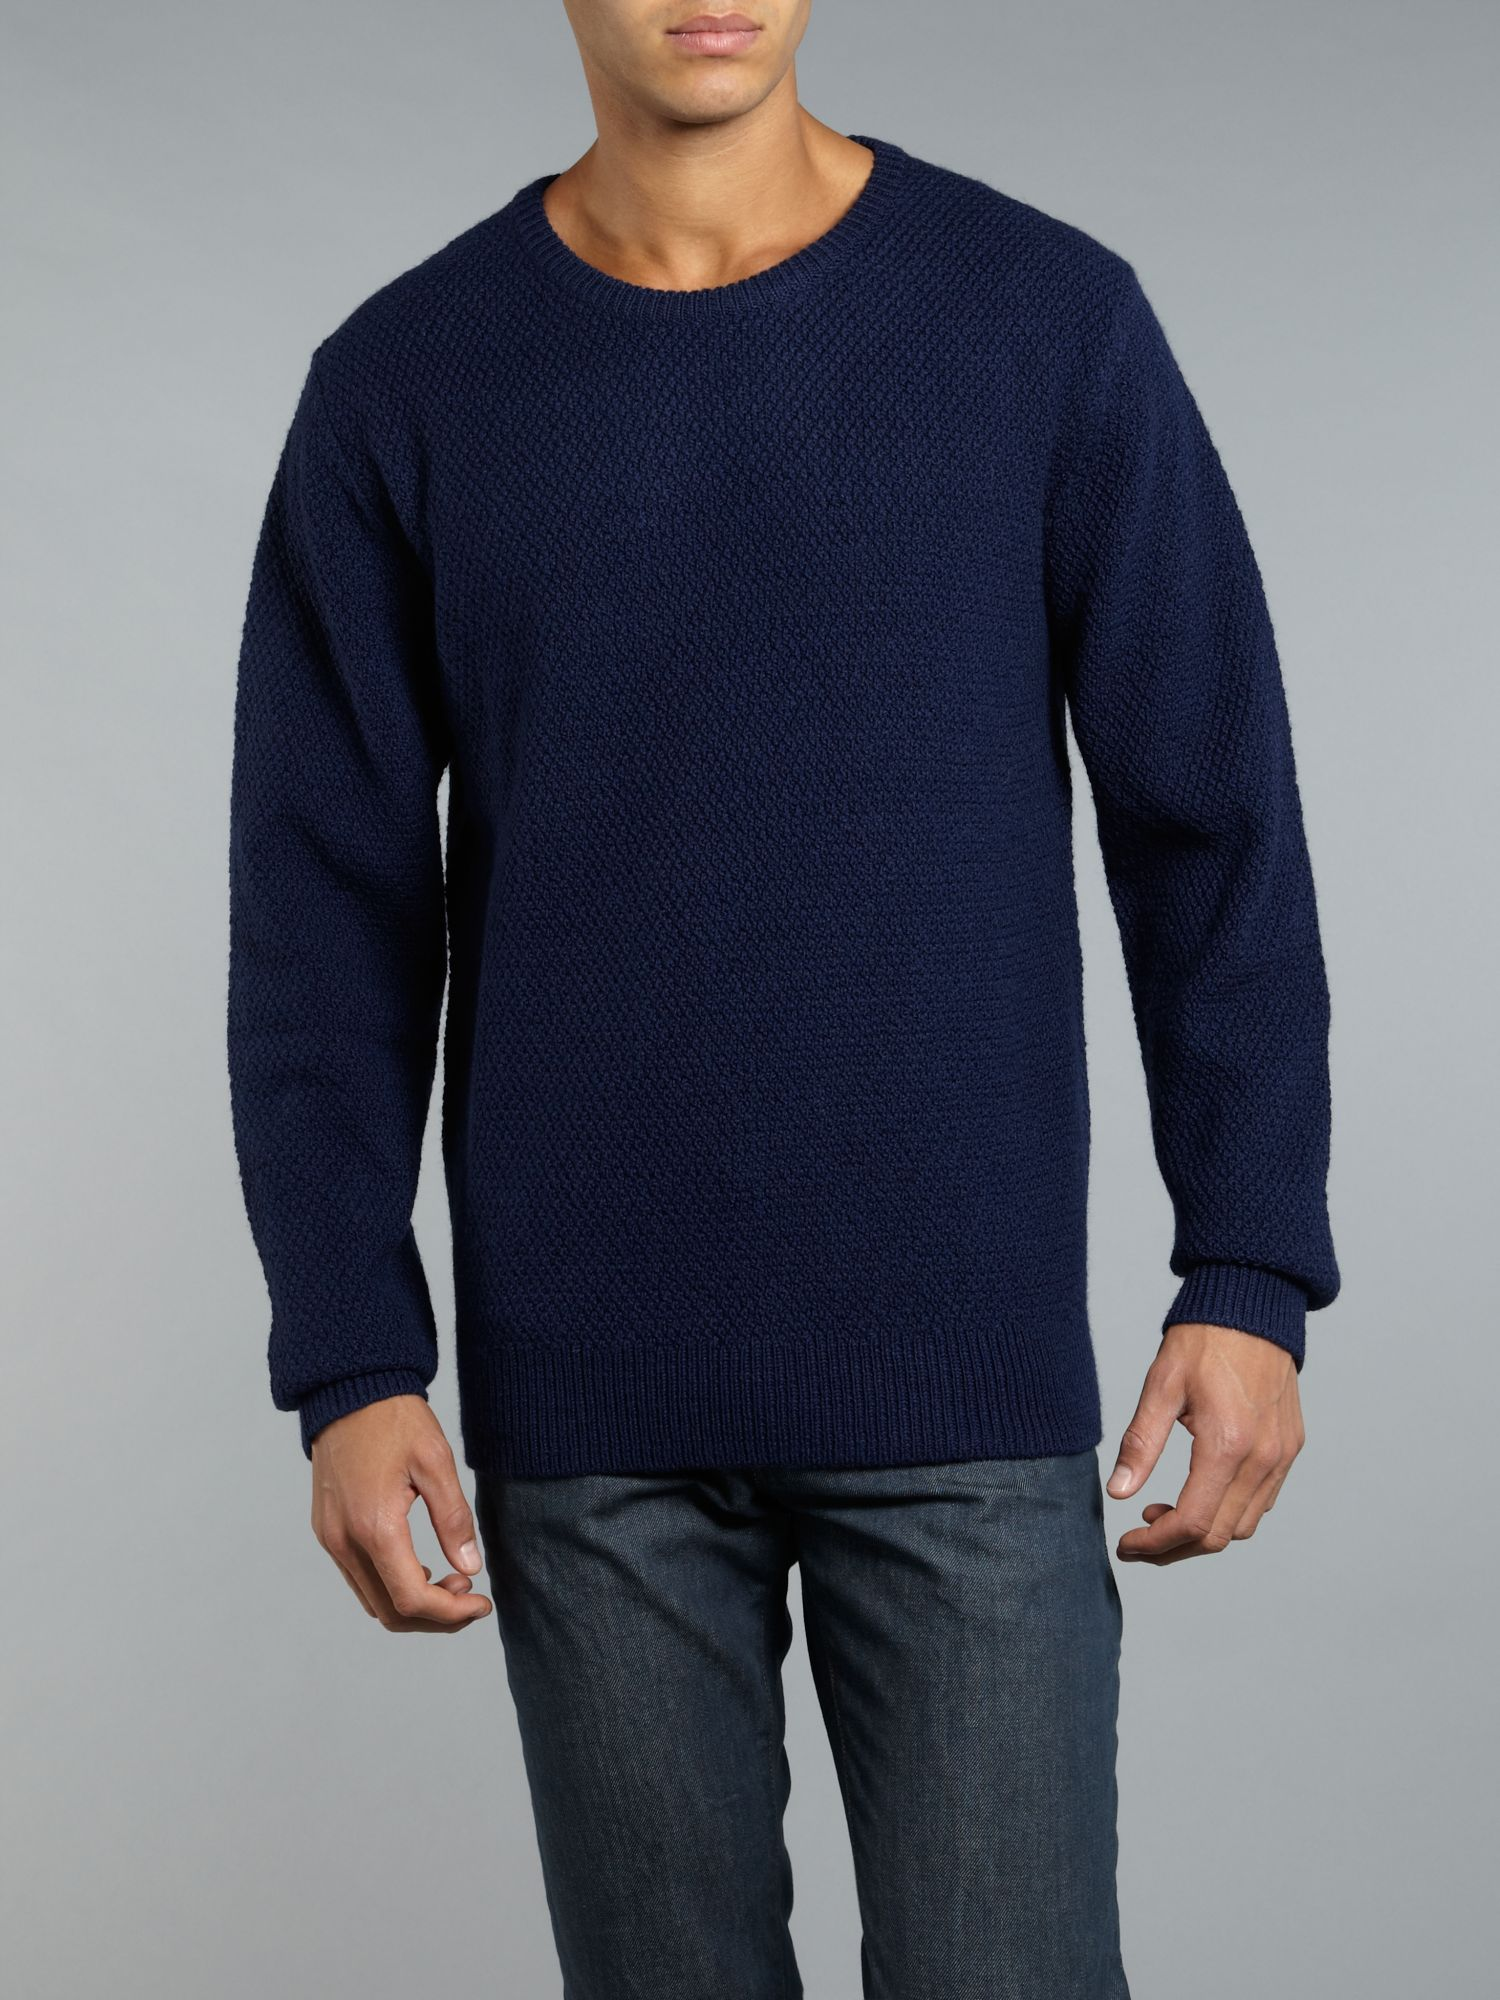 Crew neck stitch knitwear